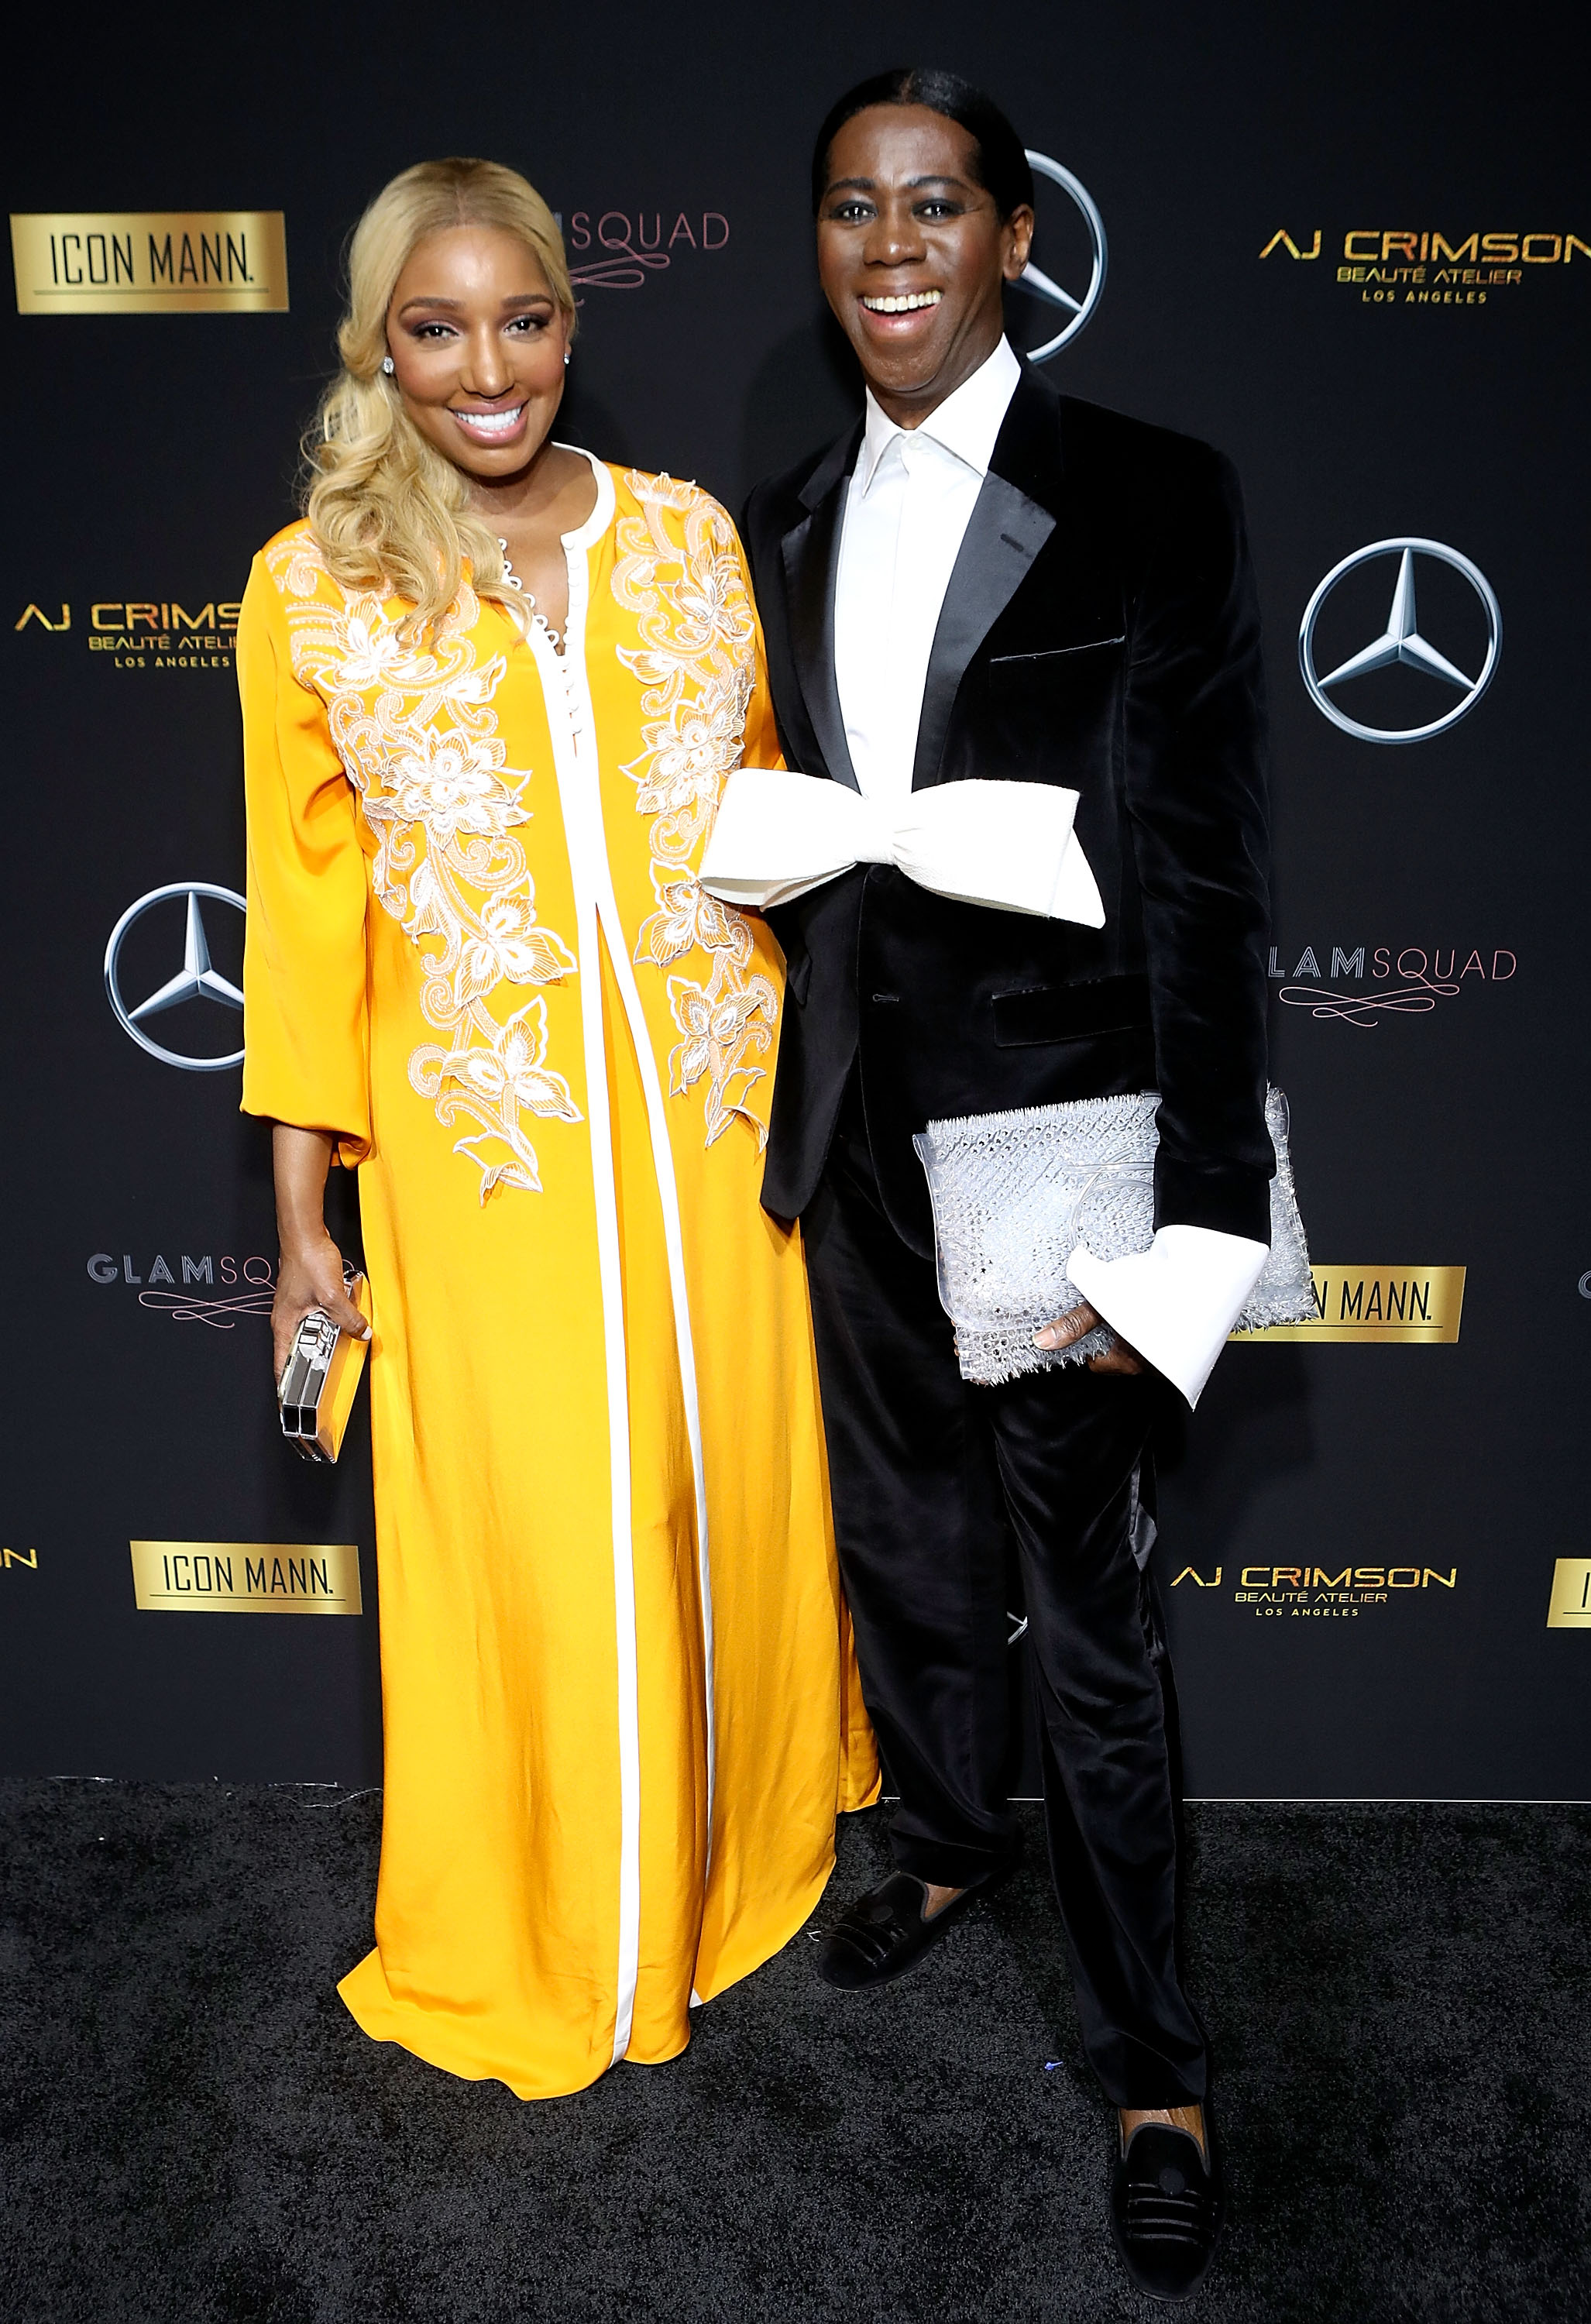 NeNe Leakes (L) and J. Alexander (Photo by Randy Shropshire/Getty Images for Mercedes-Benz USA)